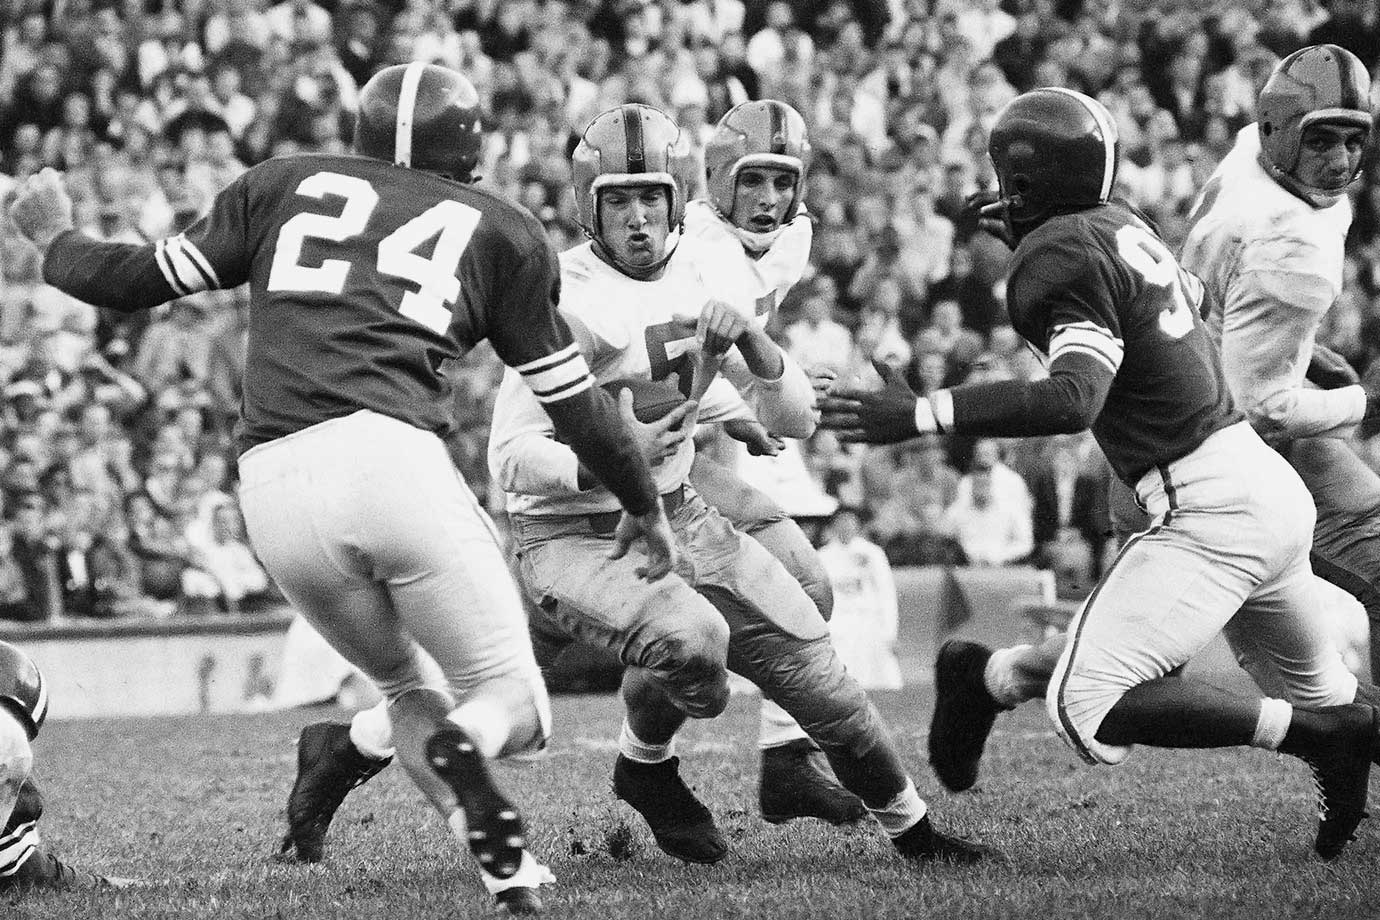 Oct. 15, 1955 — Notre Dame vs. Michigan State